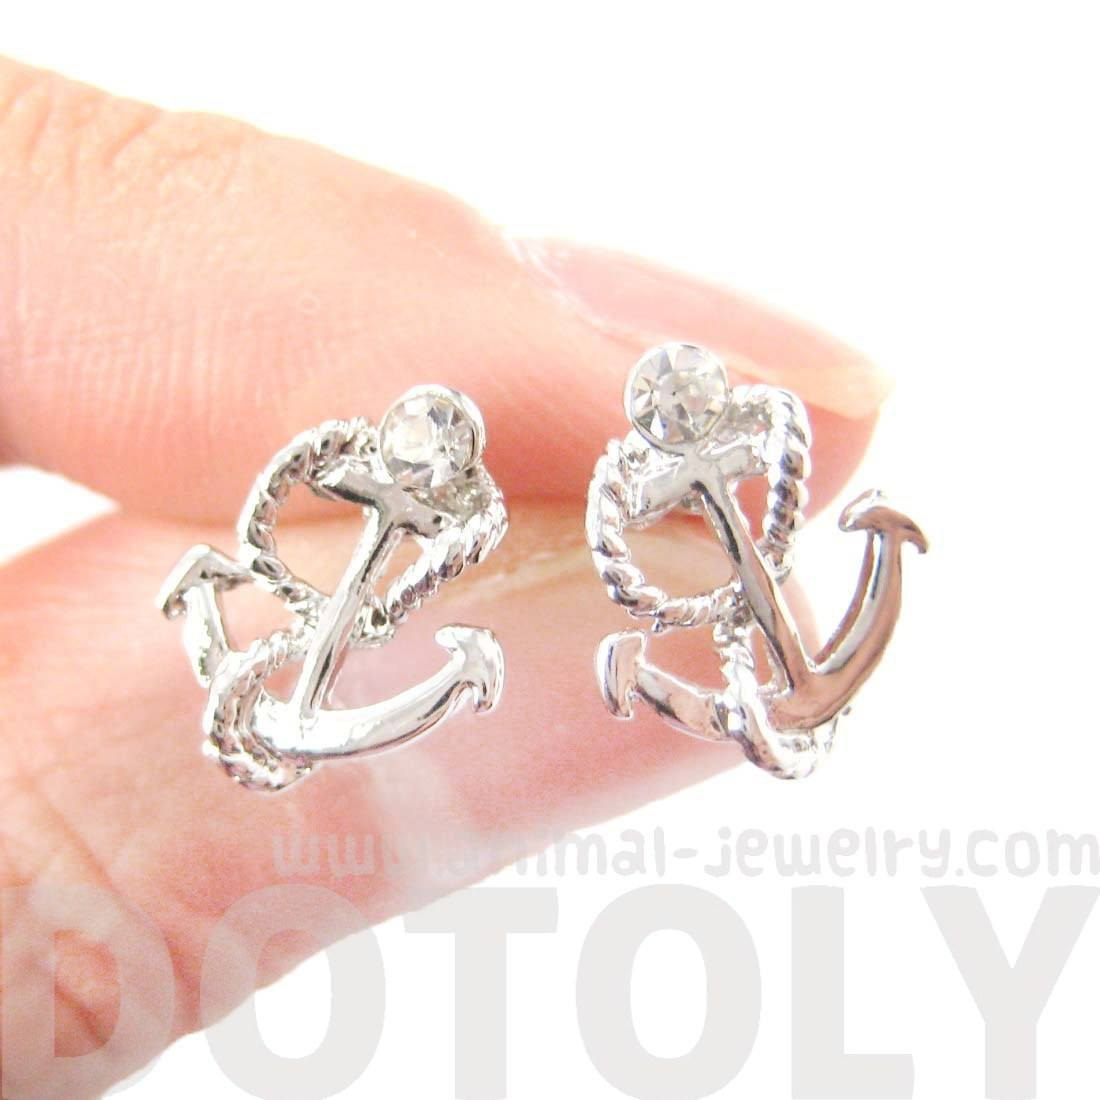 Small Anchor and Rope Shaped Nautical Themed Stud Earrings in Silver